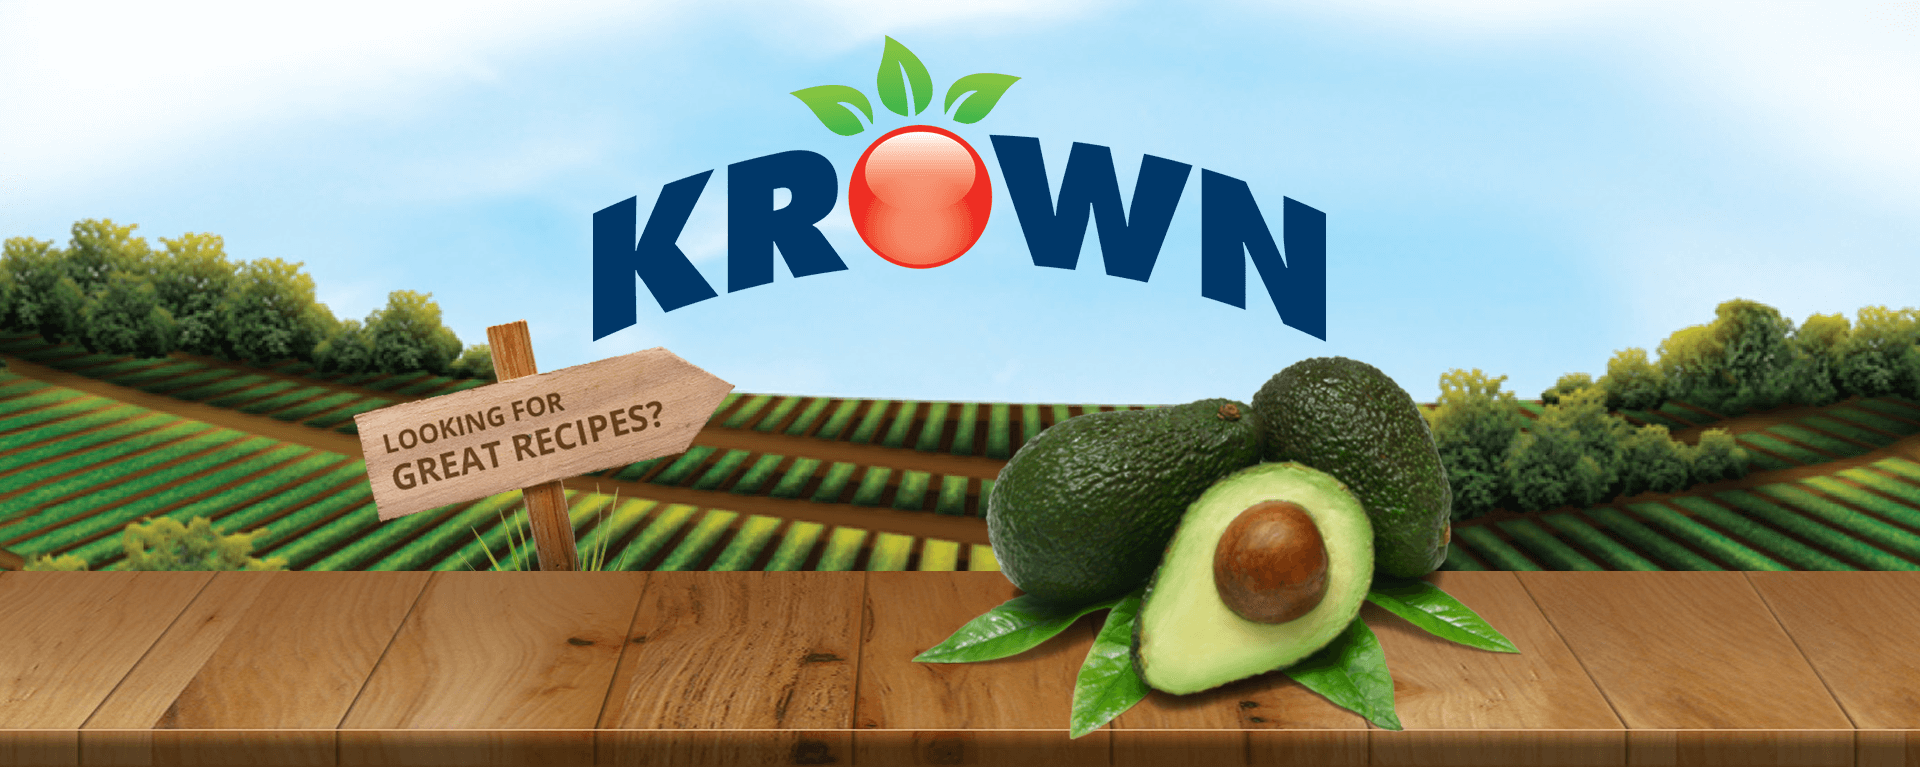 Krown Produce   A leading supplier in fruits and vegetables